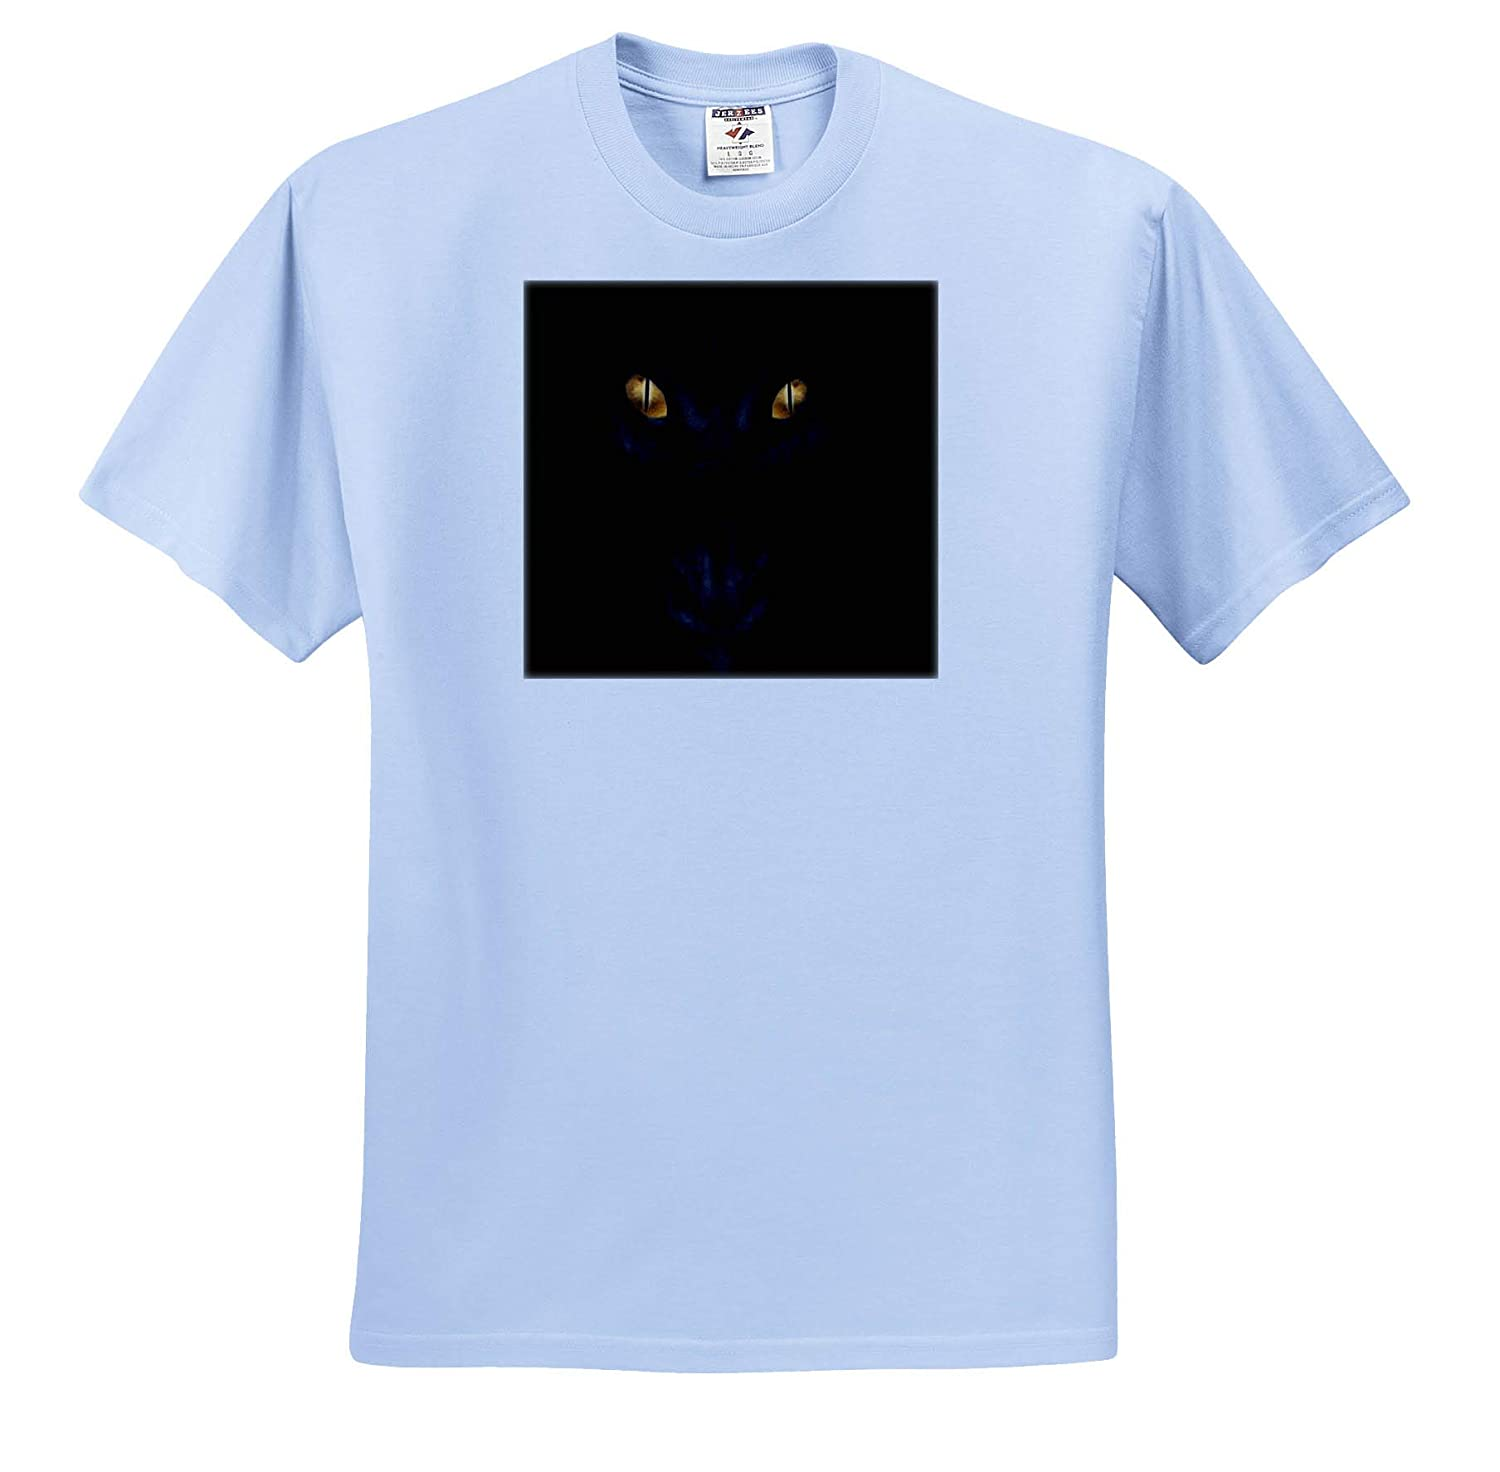 Image of Spooky Closeup of Black Face Cat Yellow Eyes T-Shirts Nature 3dRose Lens Art by Florene